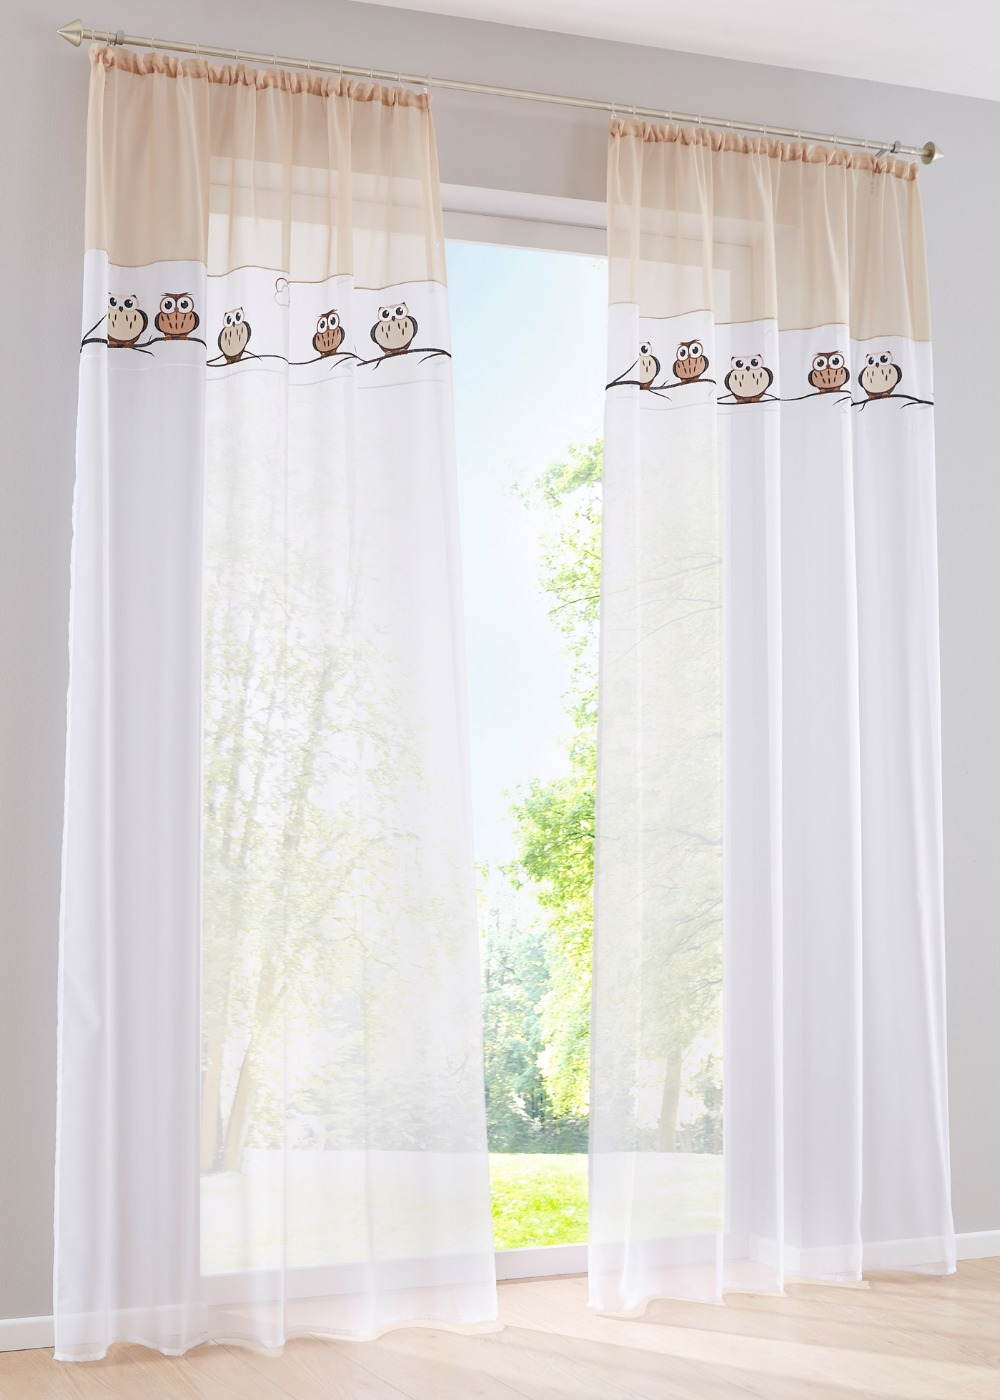 Online Buy Wholesale Peach Colored Curtains From China Peach Colored Curtains Wholesalers